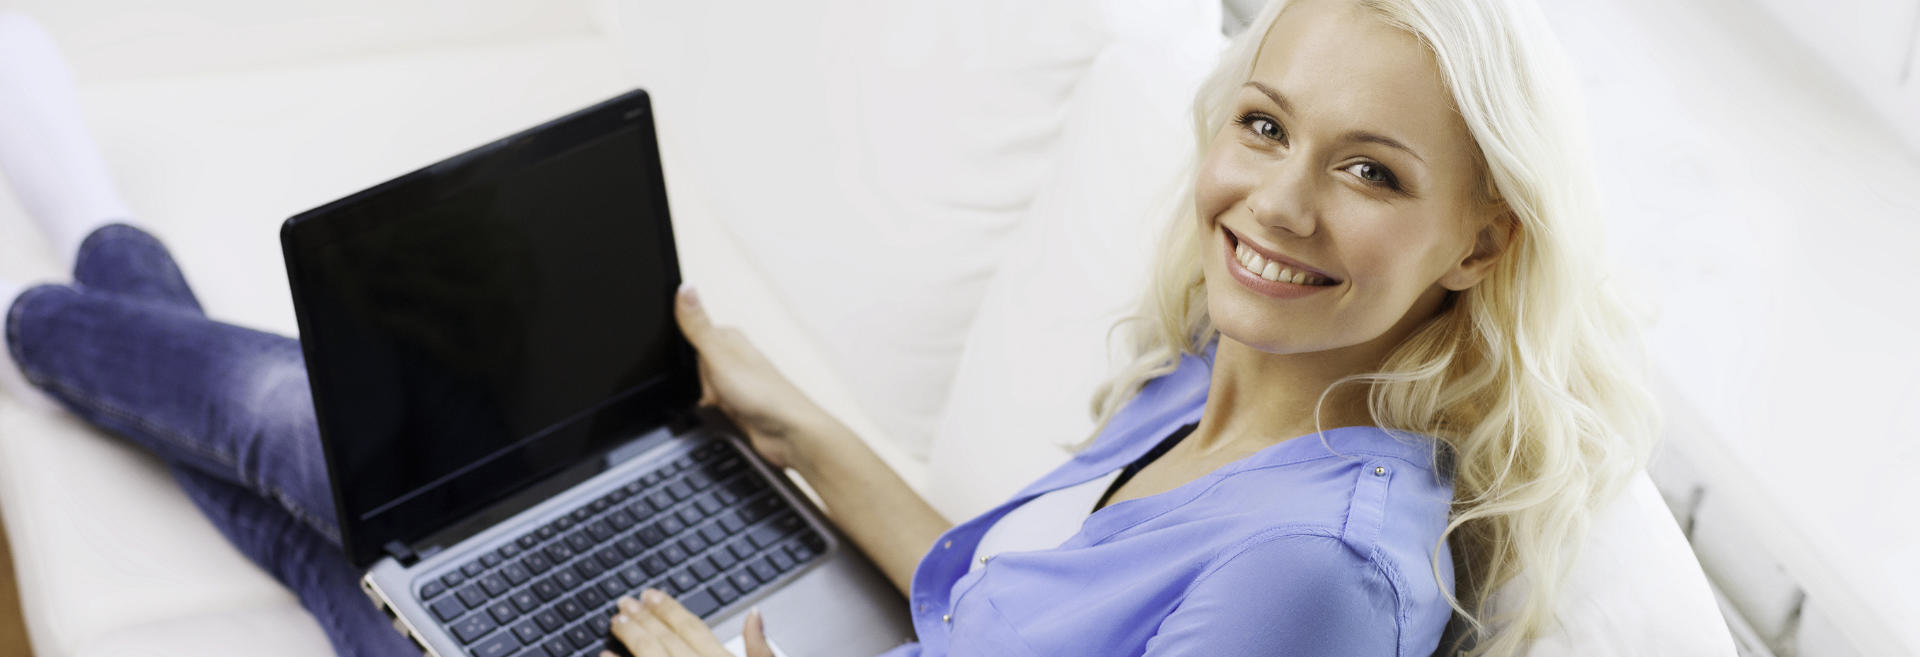 broadly smiling beautiful young woman with laptop